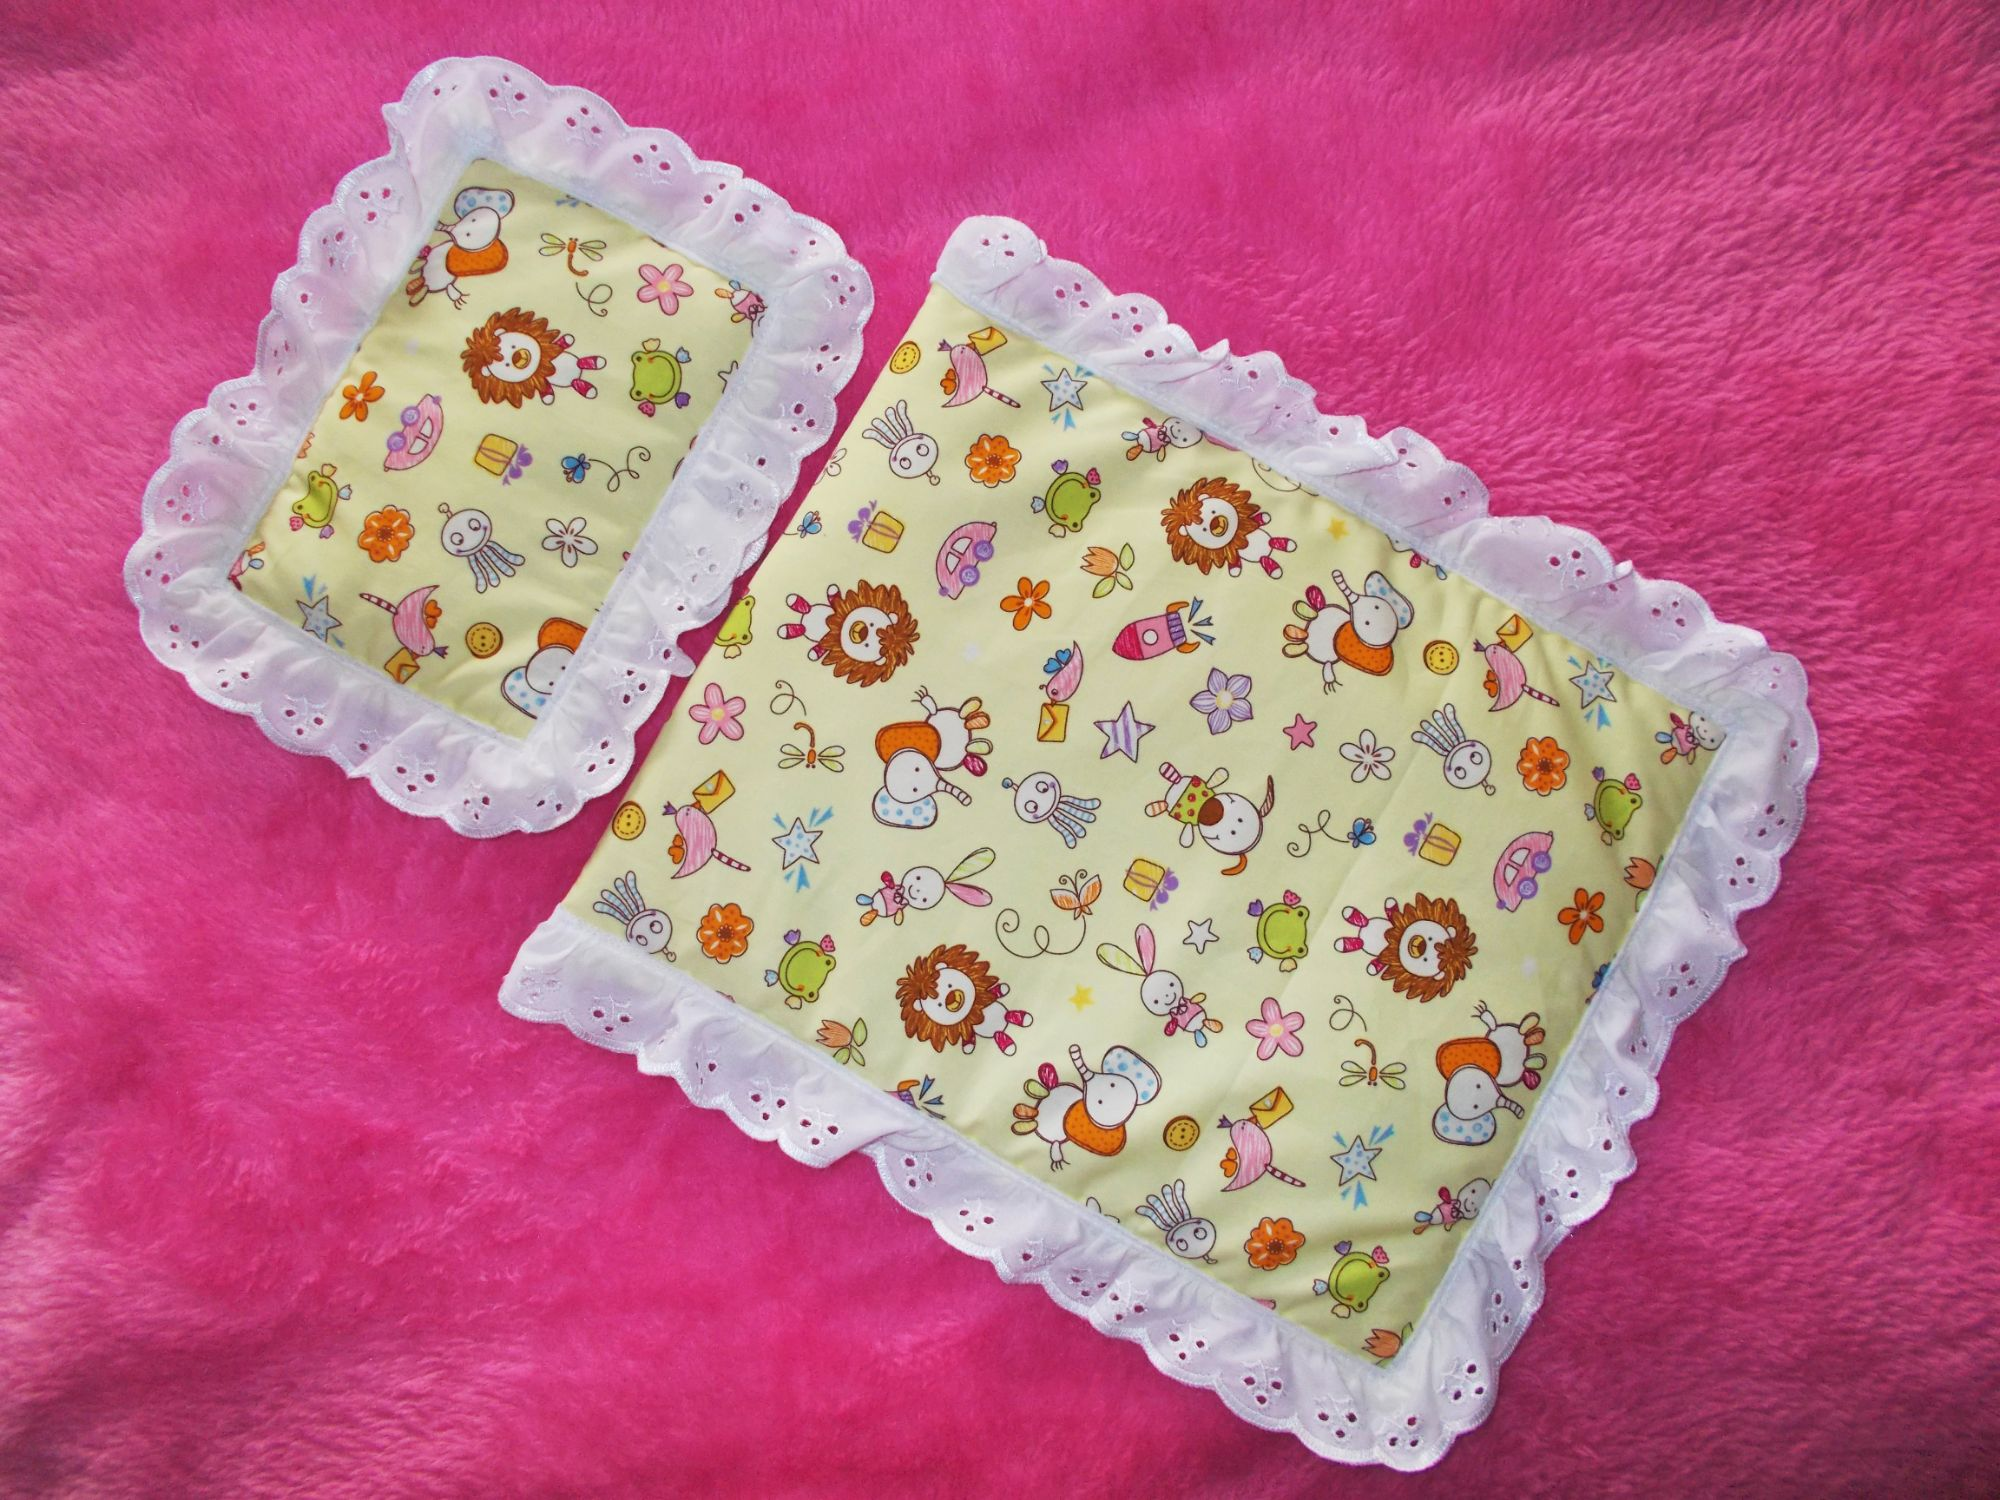 Yellow patterned quilt and pillow set